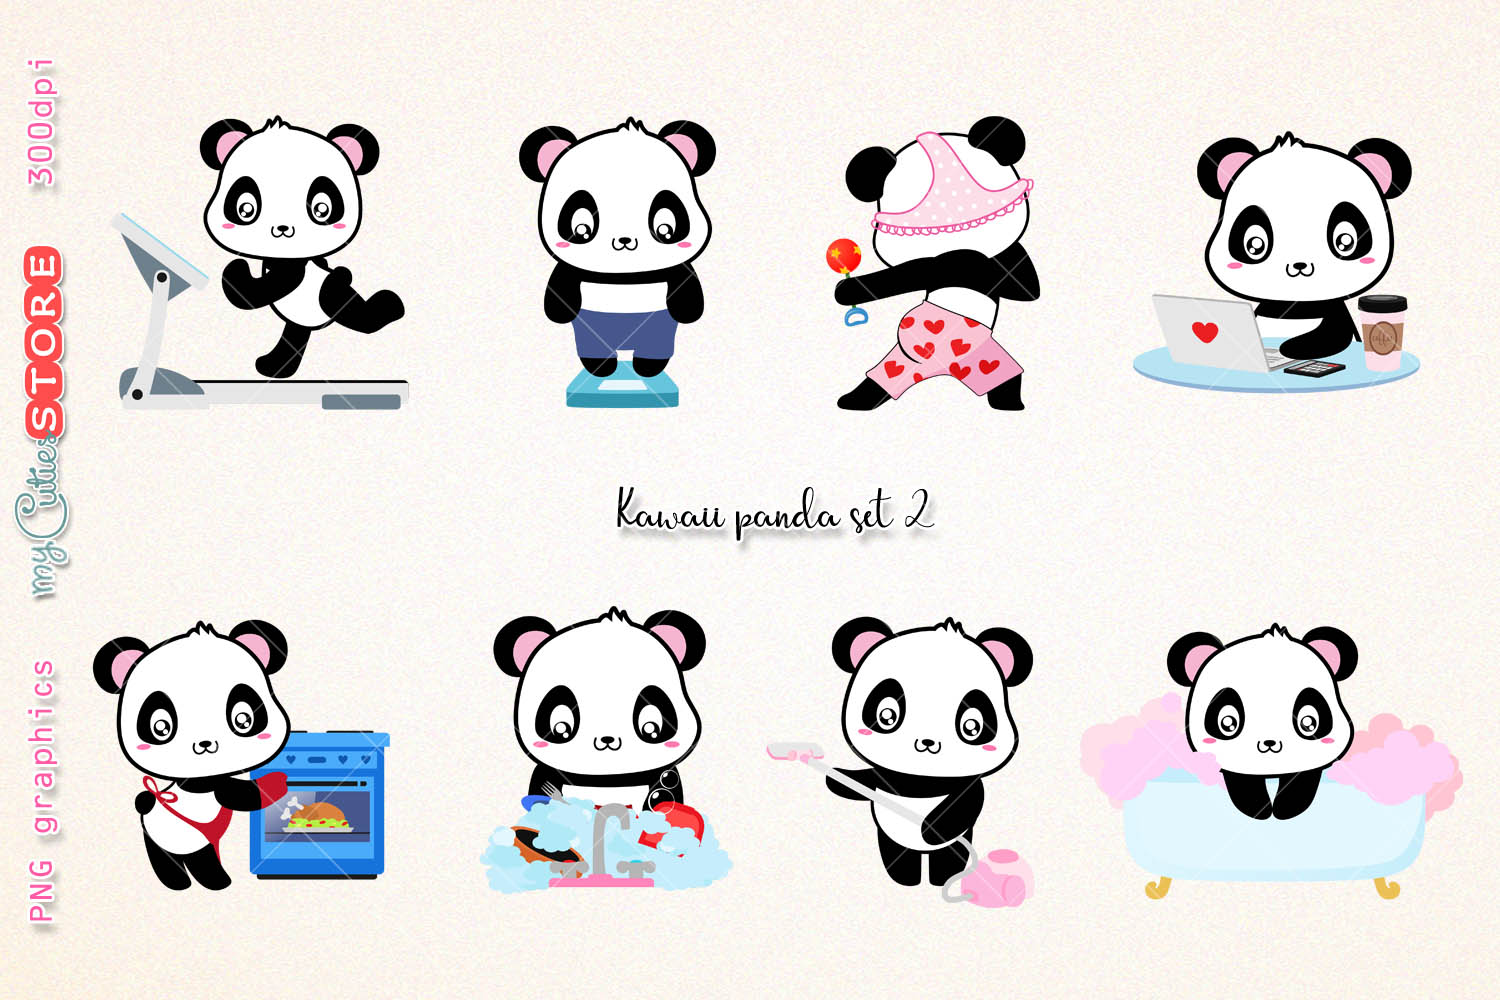 Kok clipart clip art freeuse download Kawaii panda clipart, PNG graphics collection, treadmill, weight scale,  cooking, wash dishes clip art great for planner stickers or digital  planning. clip art freeuse download